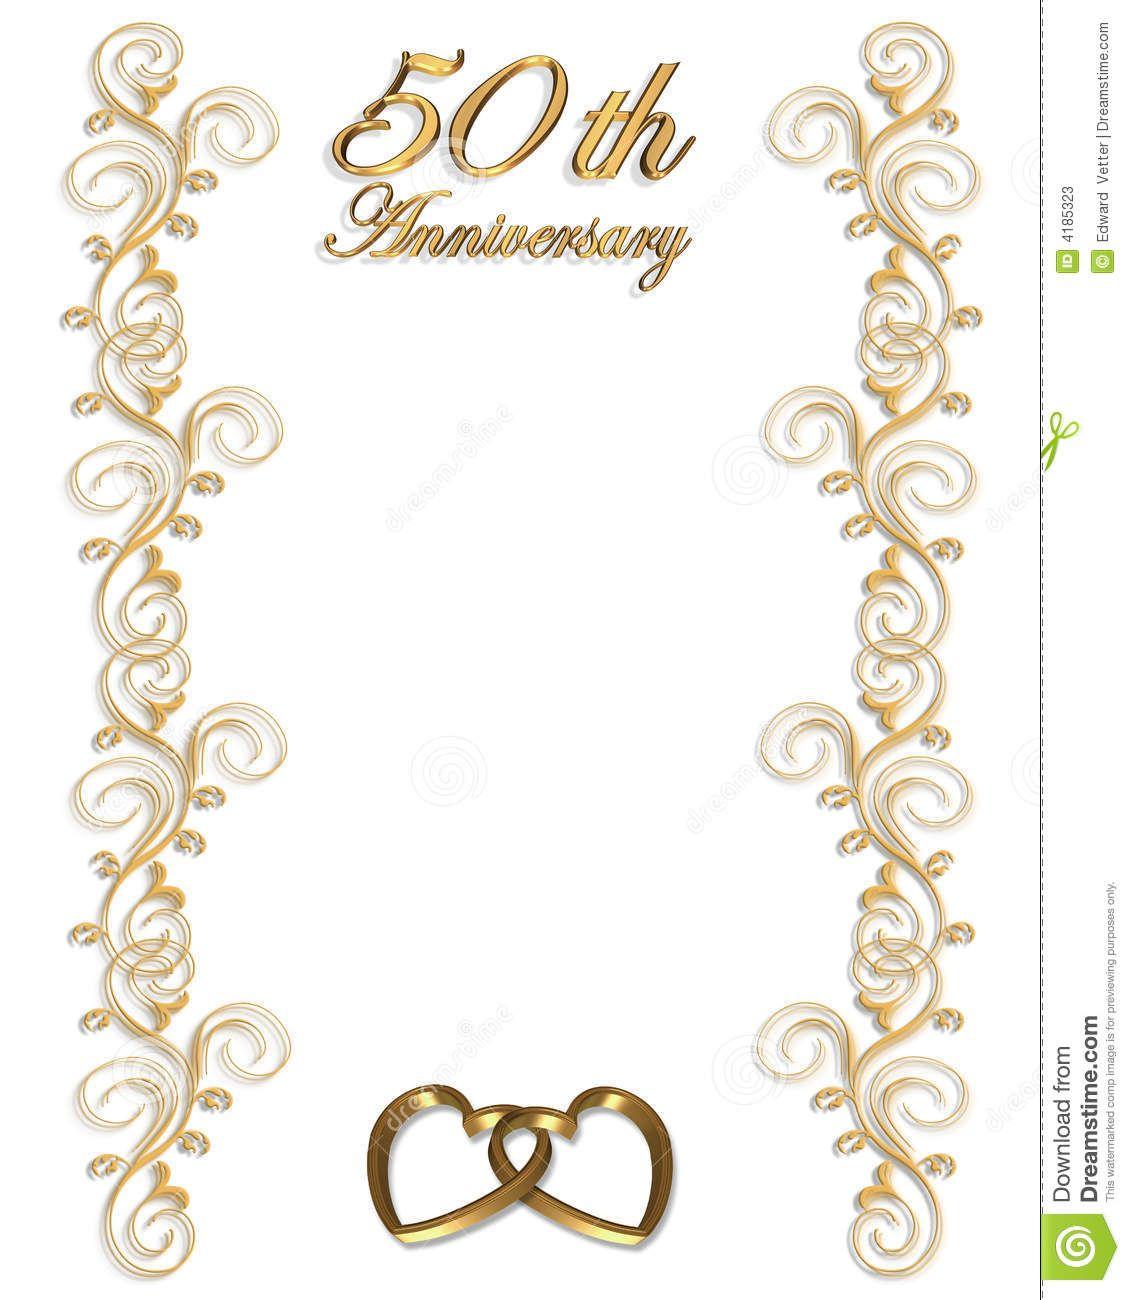 50th Anniversary Hearts Clipart  Clipart Kid  Anniversary  Pinterest  Anniversaries 50th